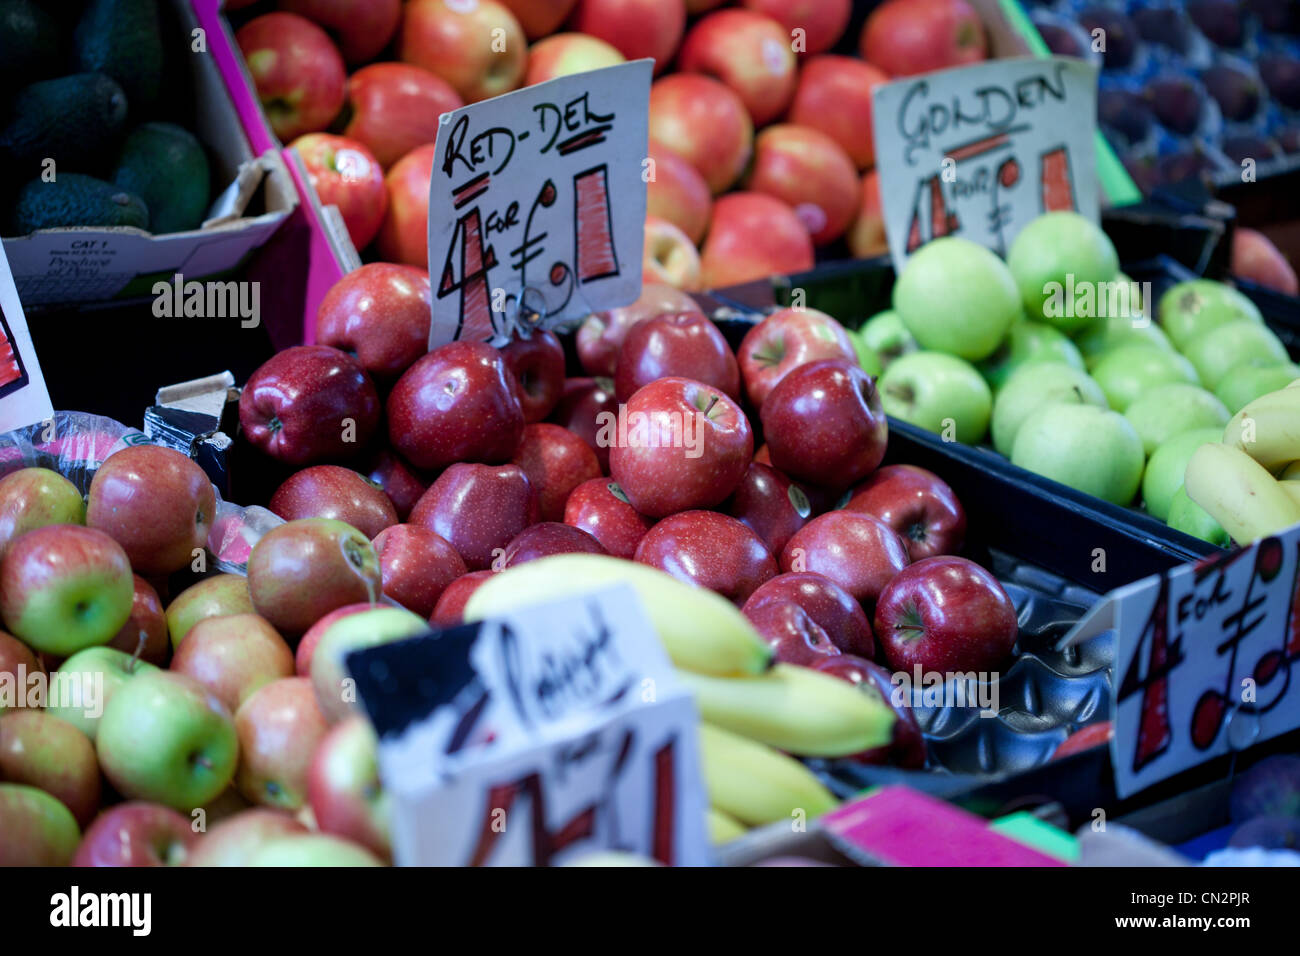 Fresh apples for sale on market stall - Stock Image